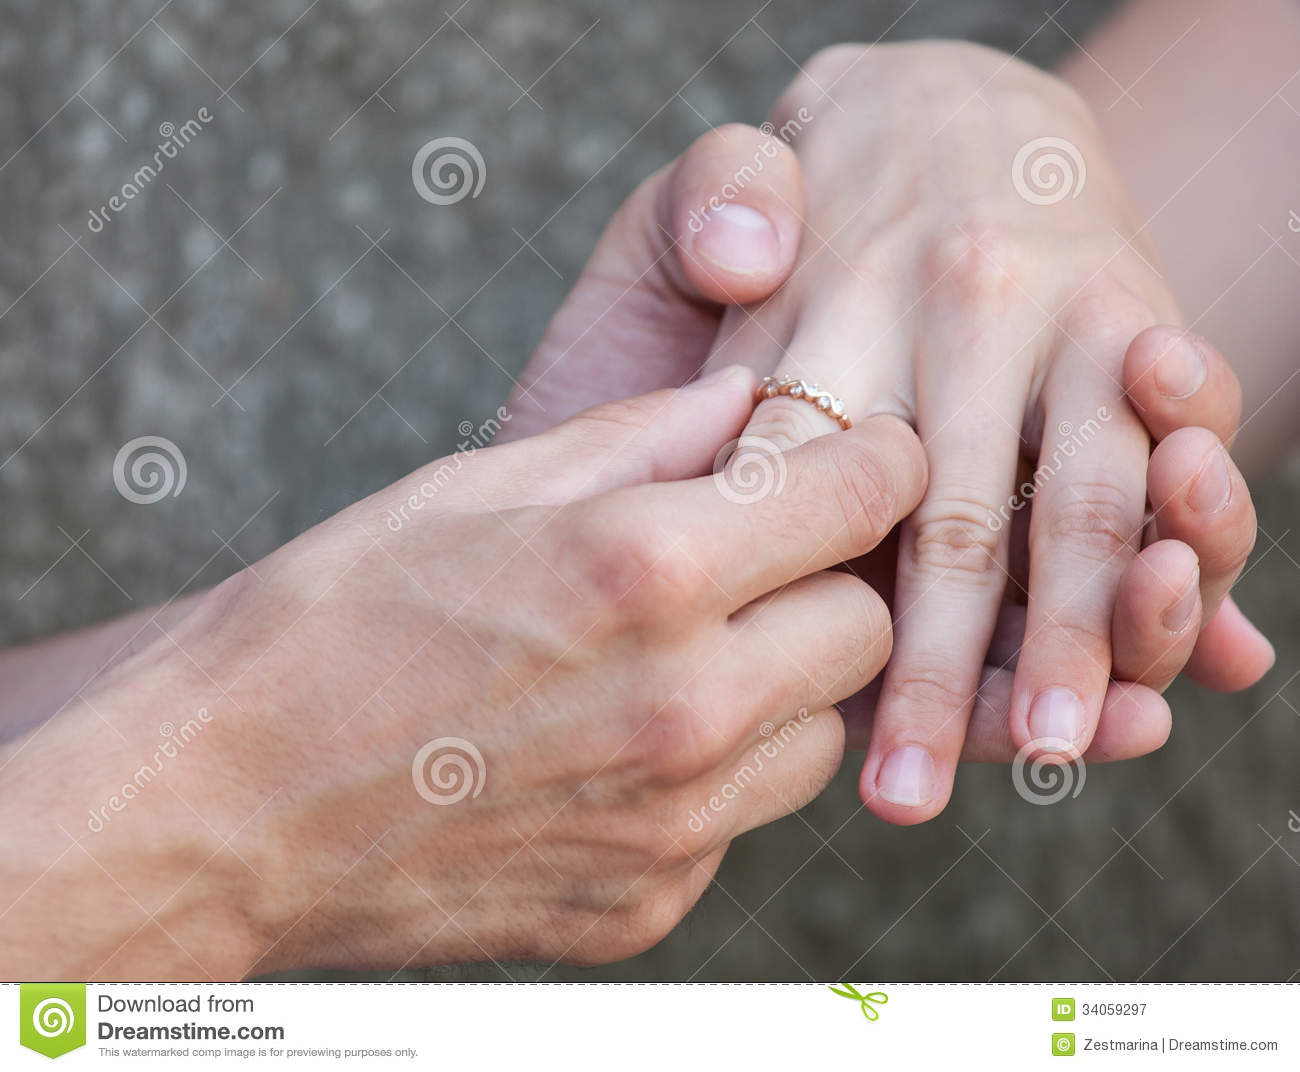 Proposal of marriage stock image. Image of ring, hand ...